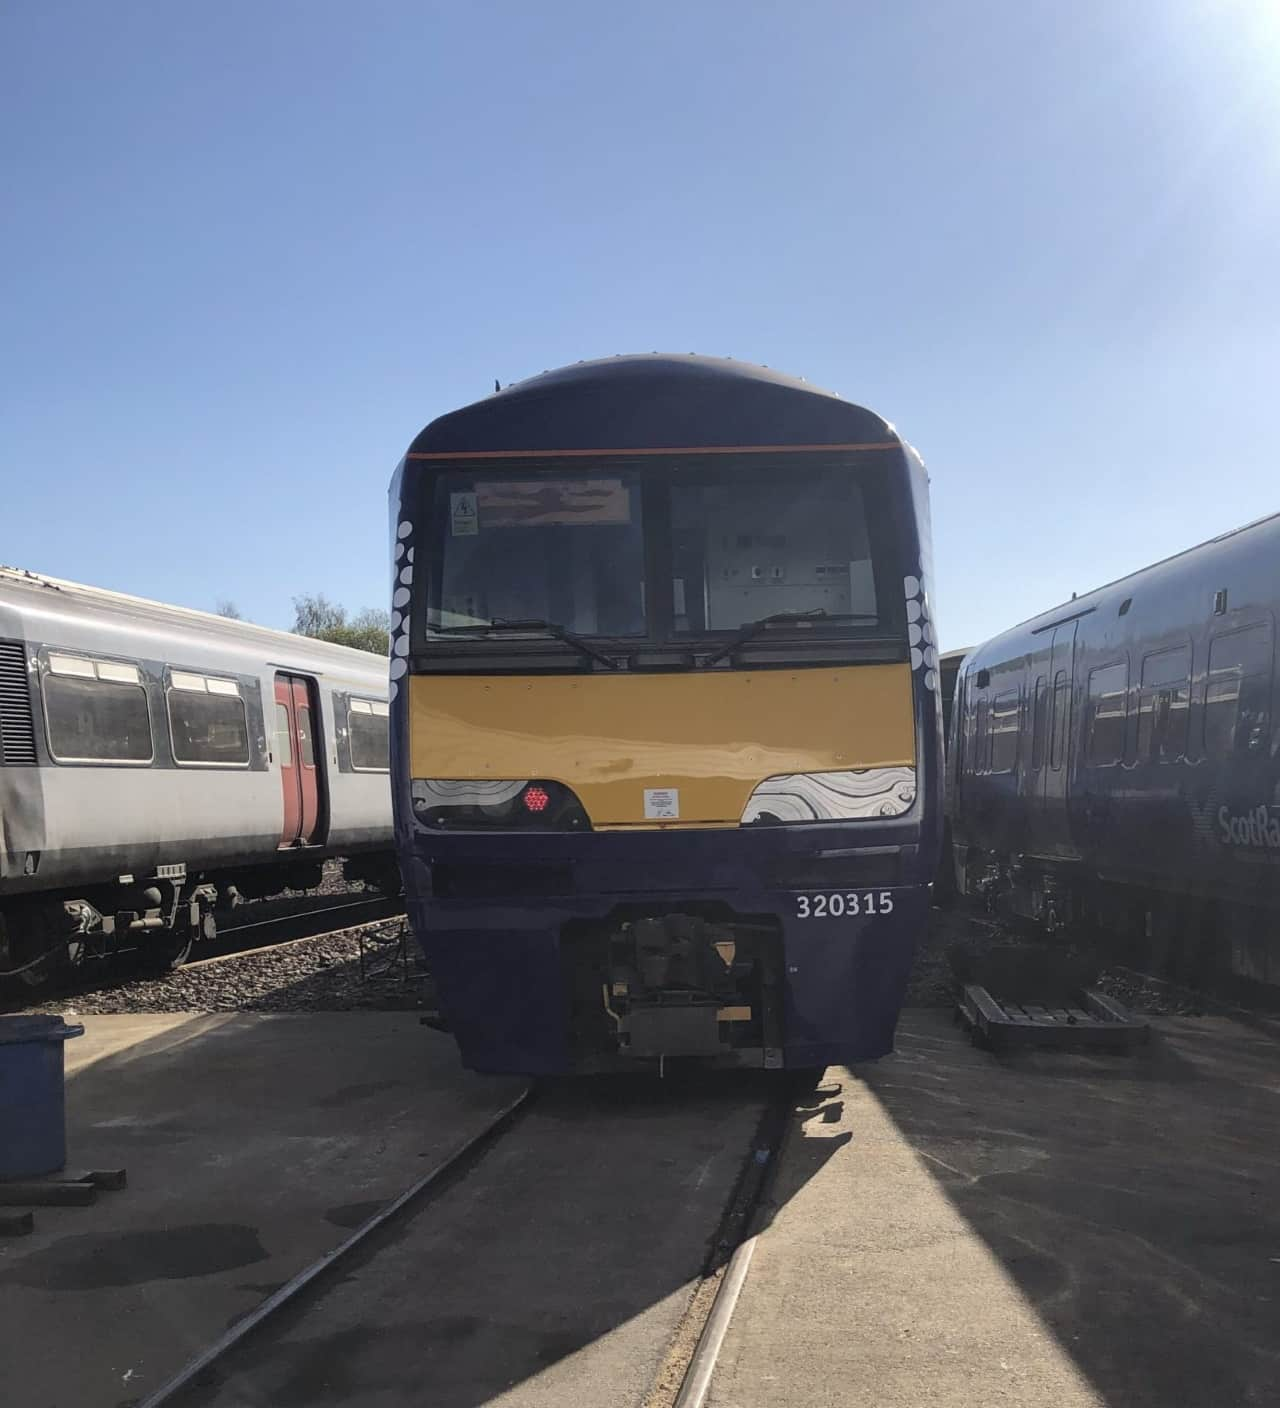 Scotrail Class 320 320315 outside the depot